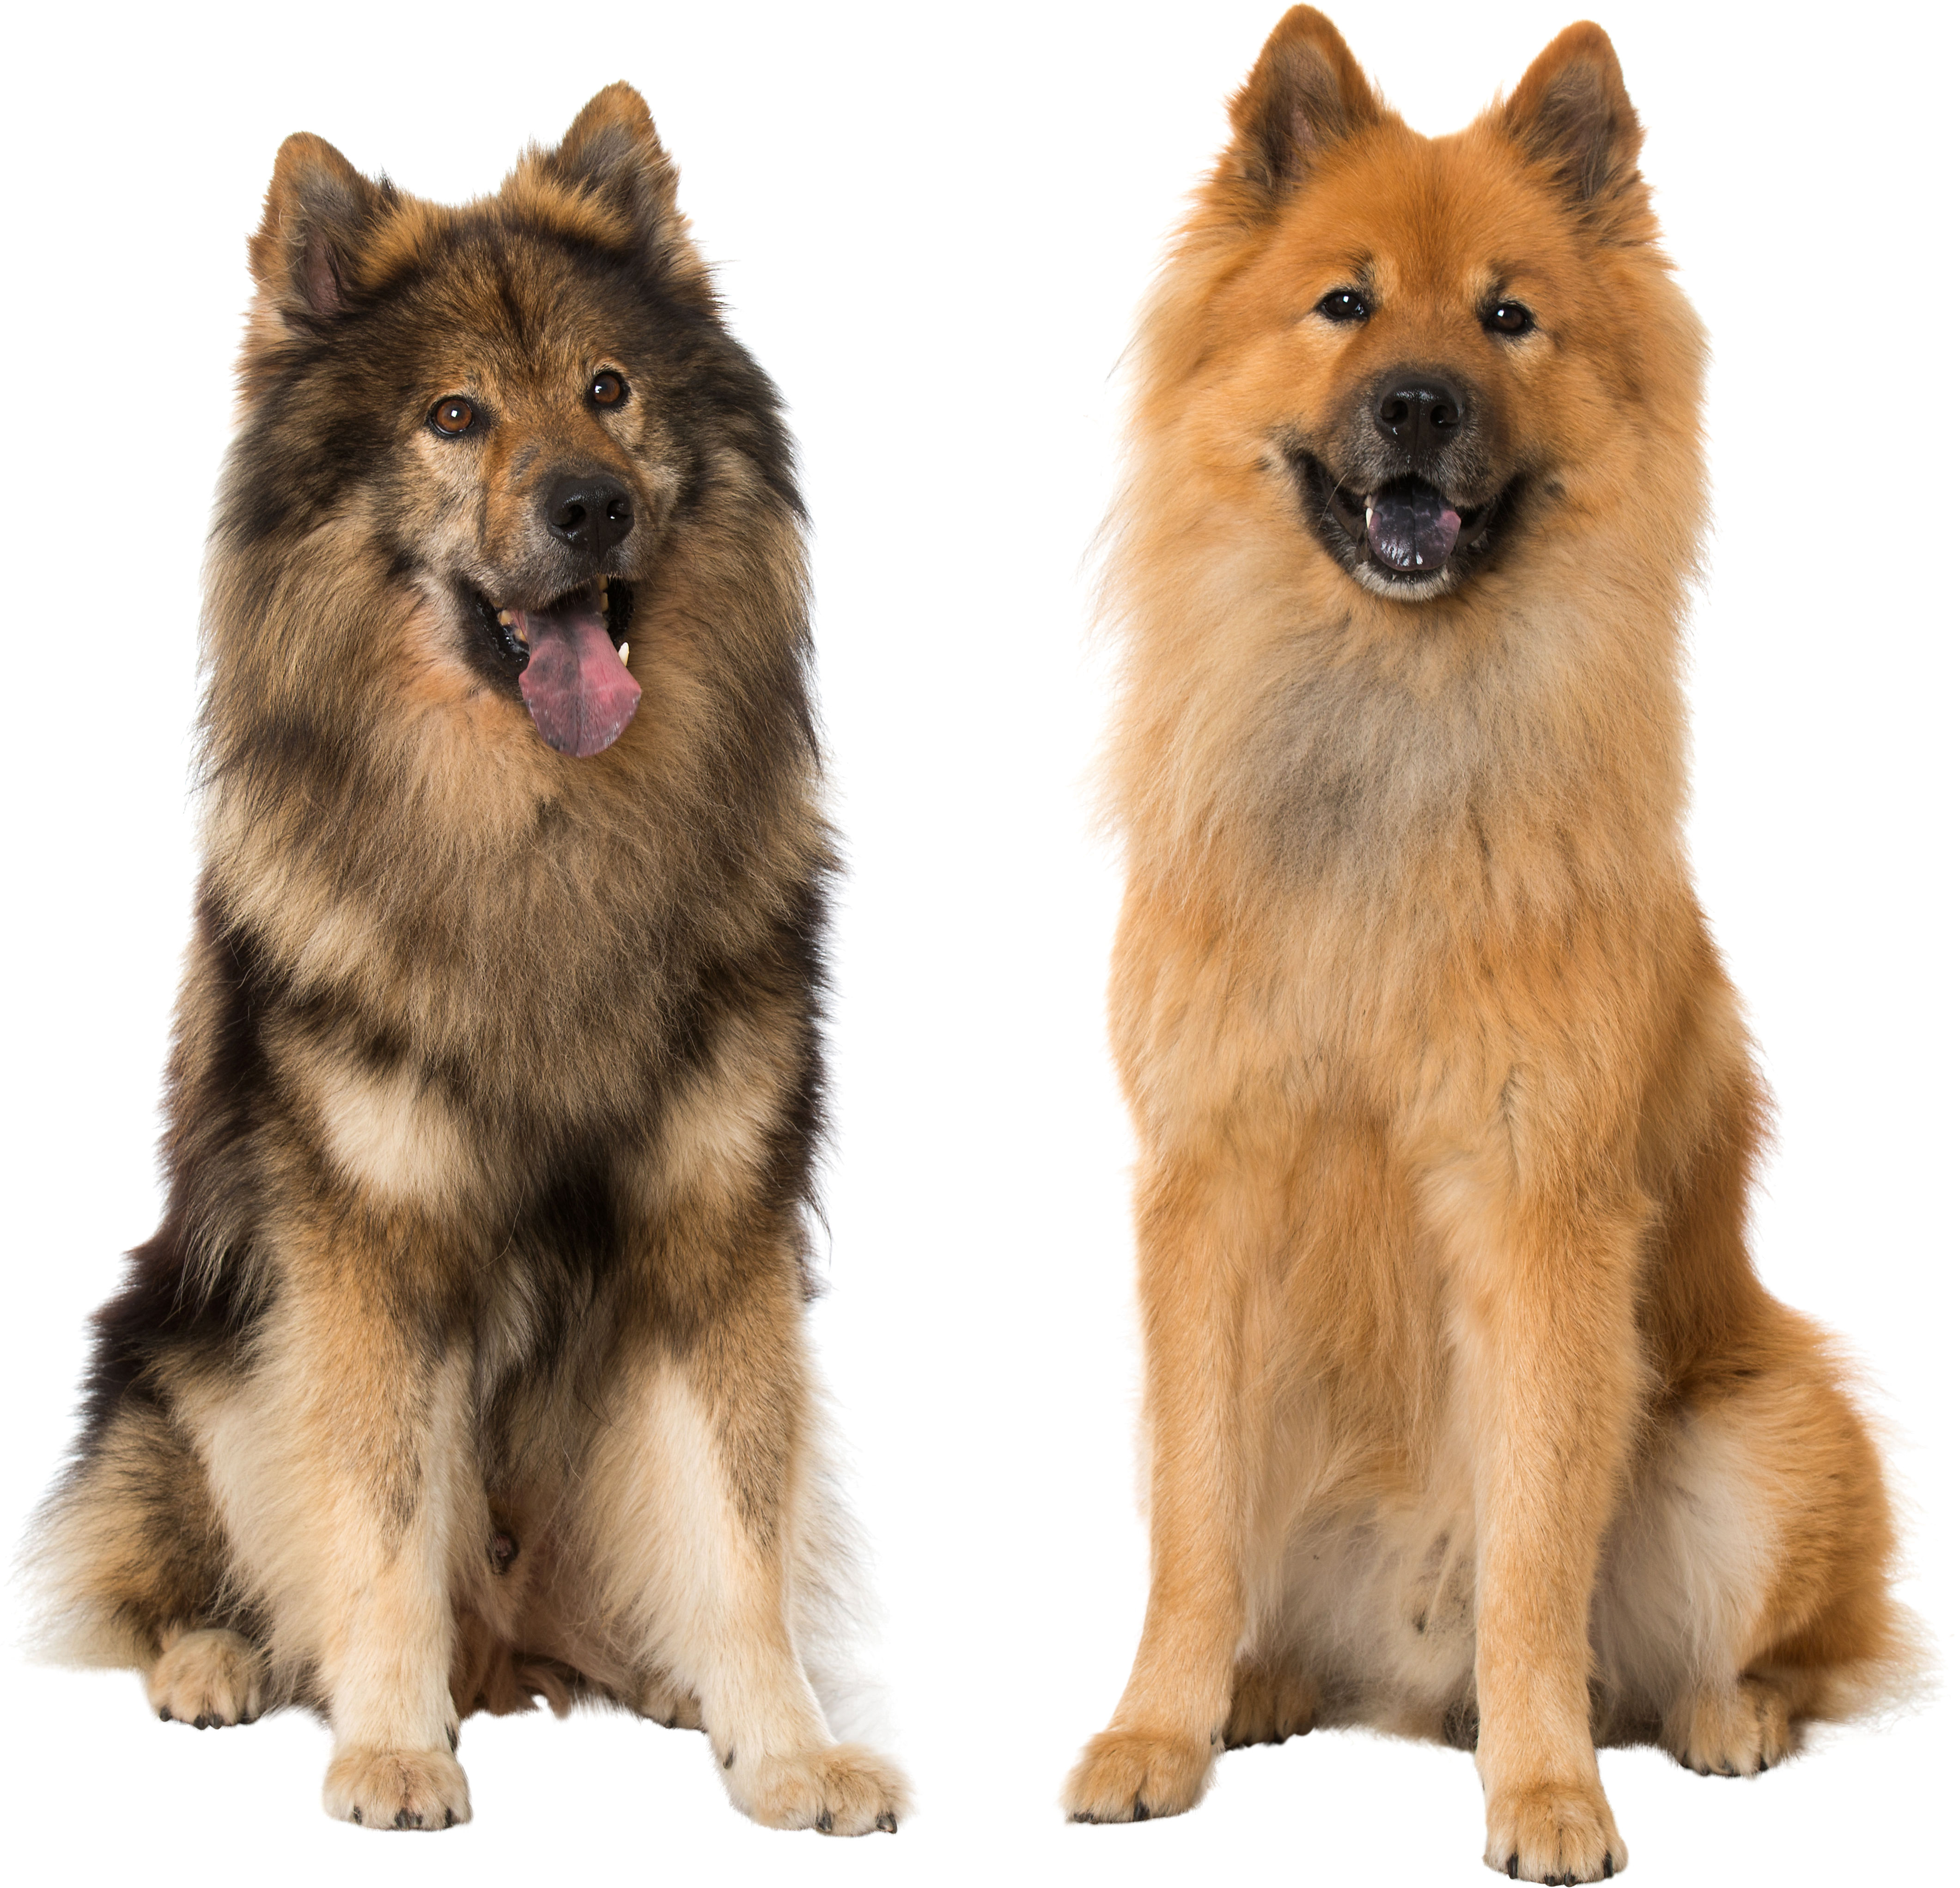 Two Eurasier dogs sitting in front of white background